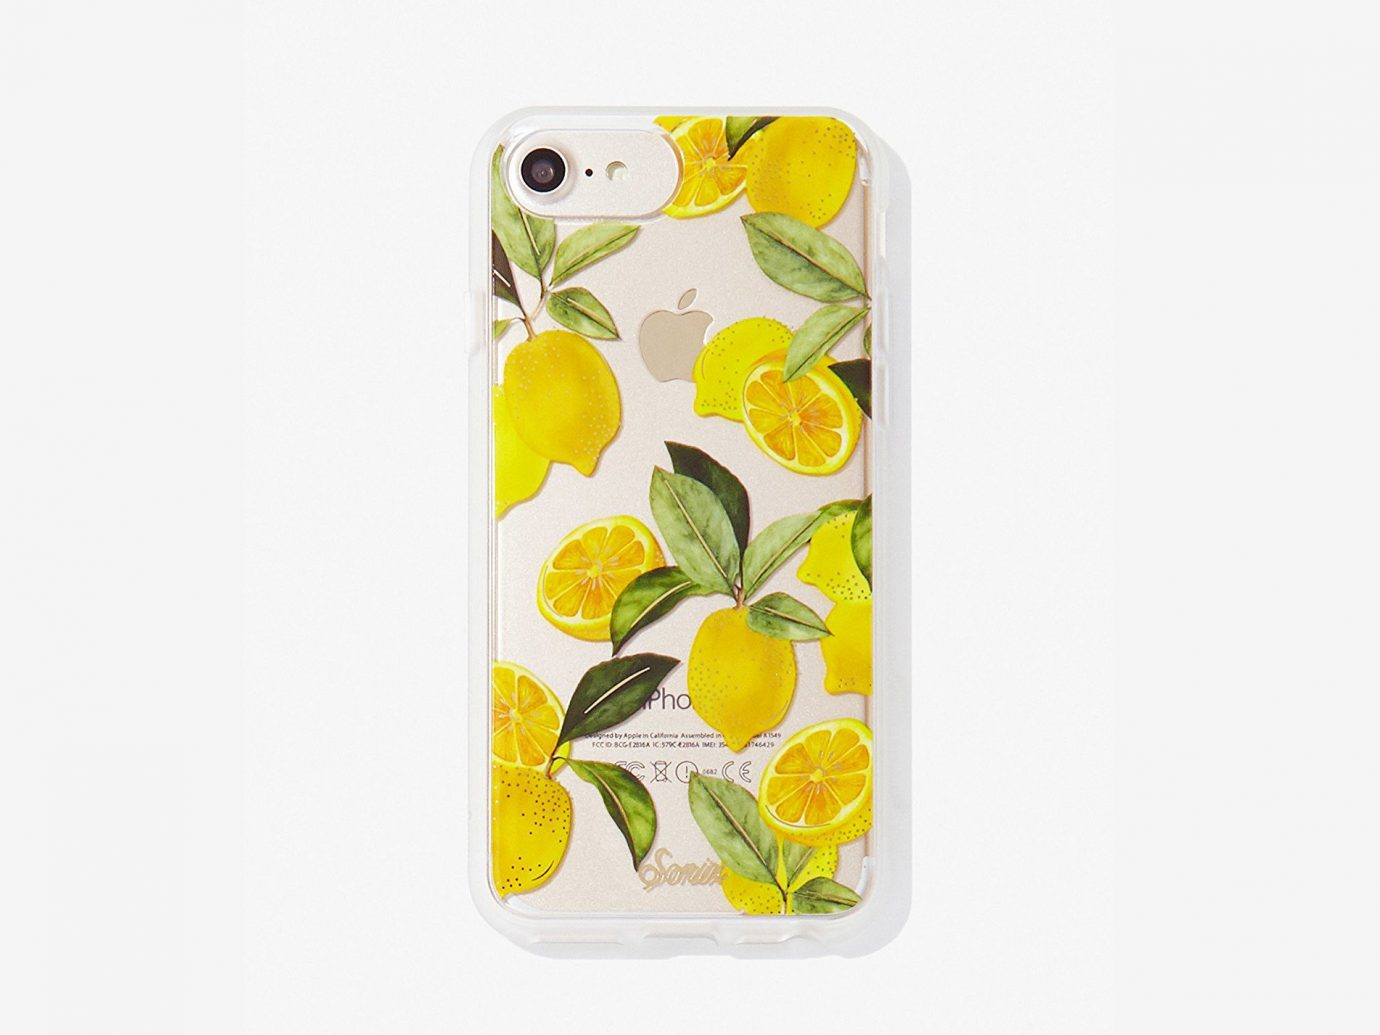 Travel Shop yellow mobile phone accessories product fruit